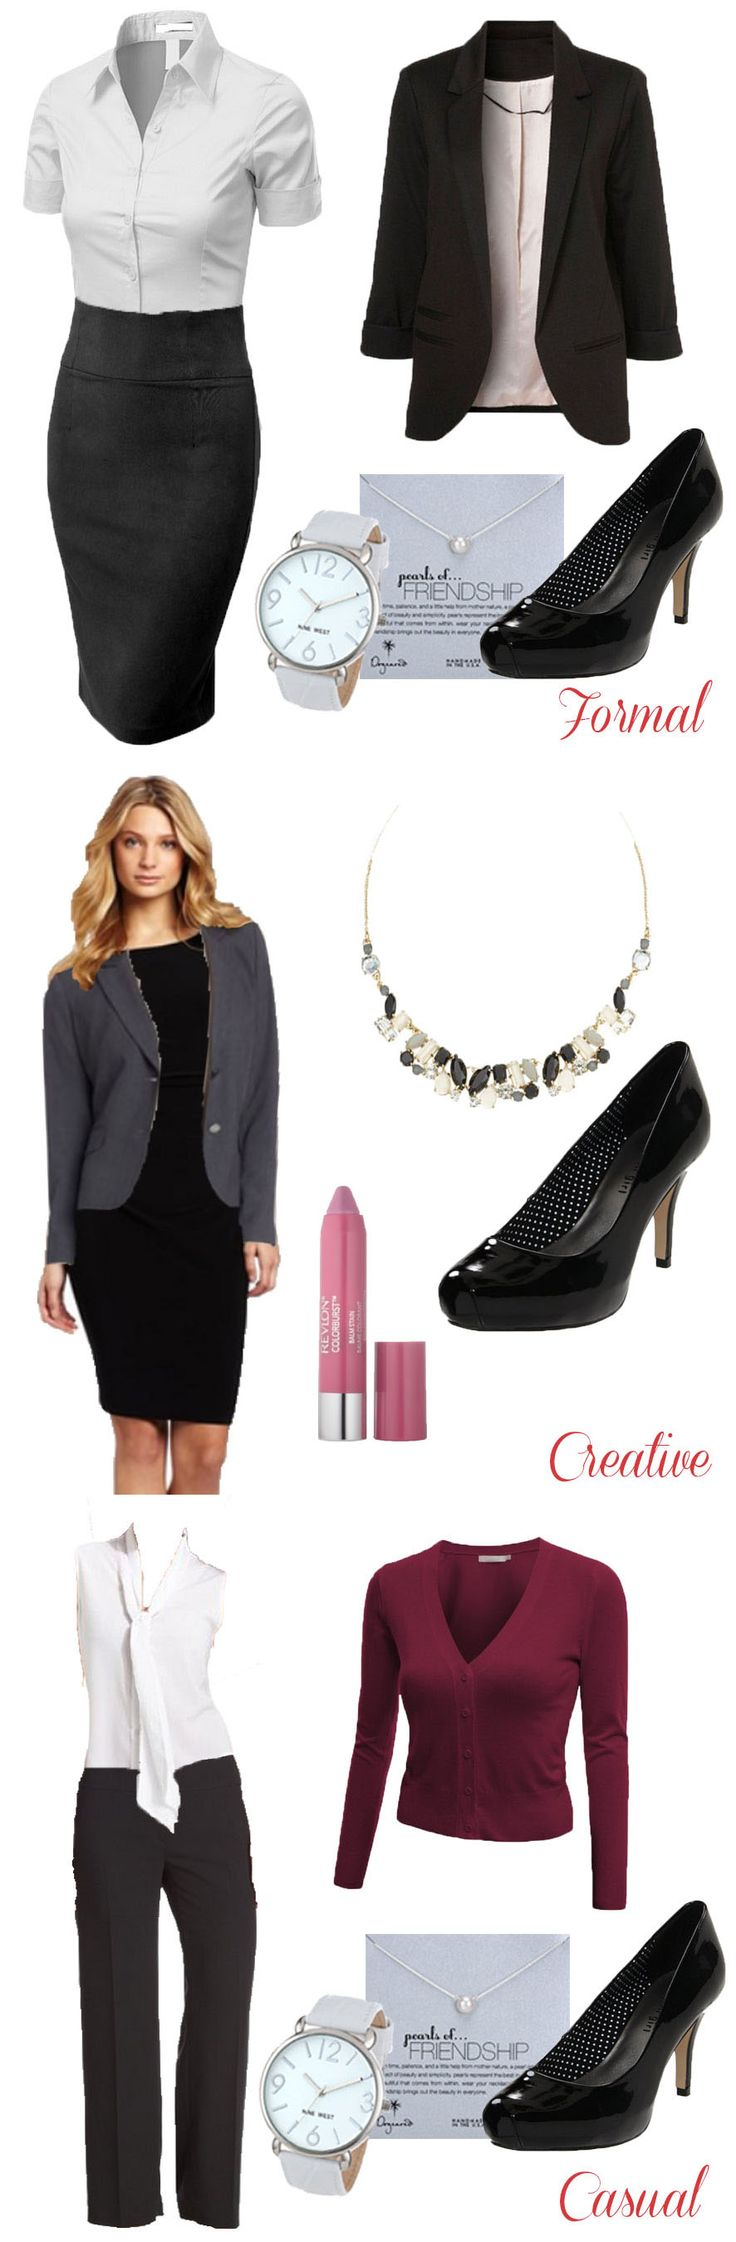 Formal, Creative, Casual Interview Outfits